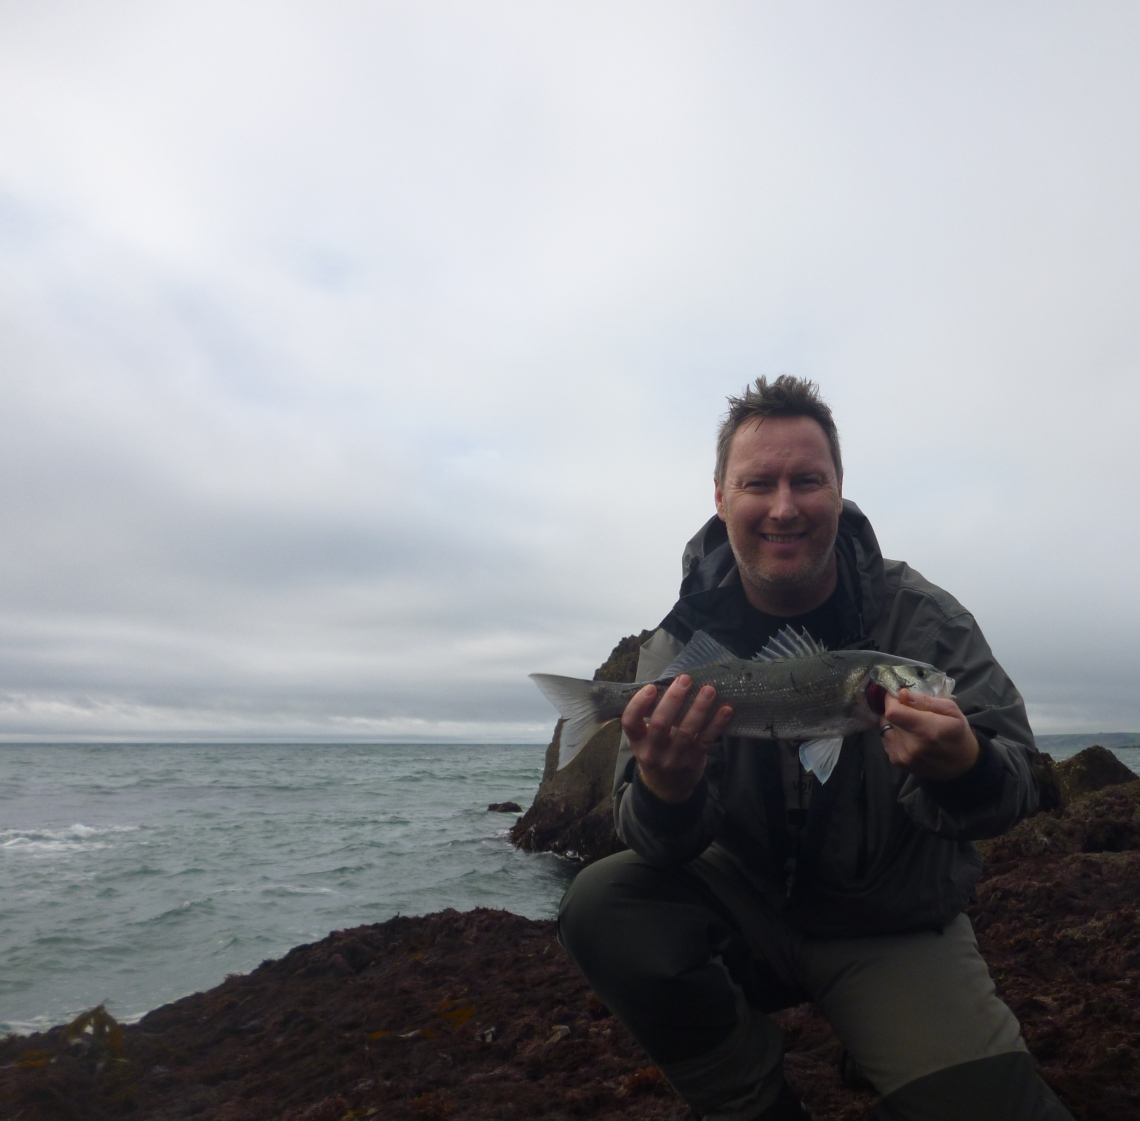 bass-caught-in-overcast-conditions